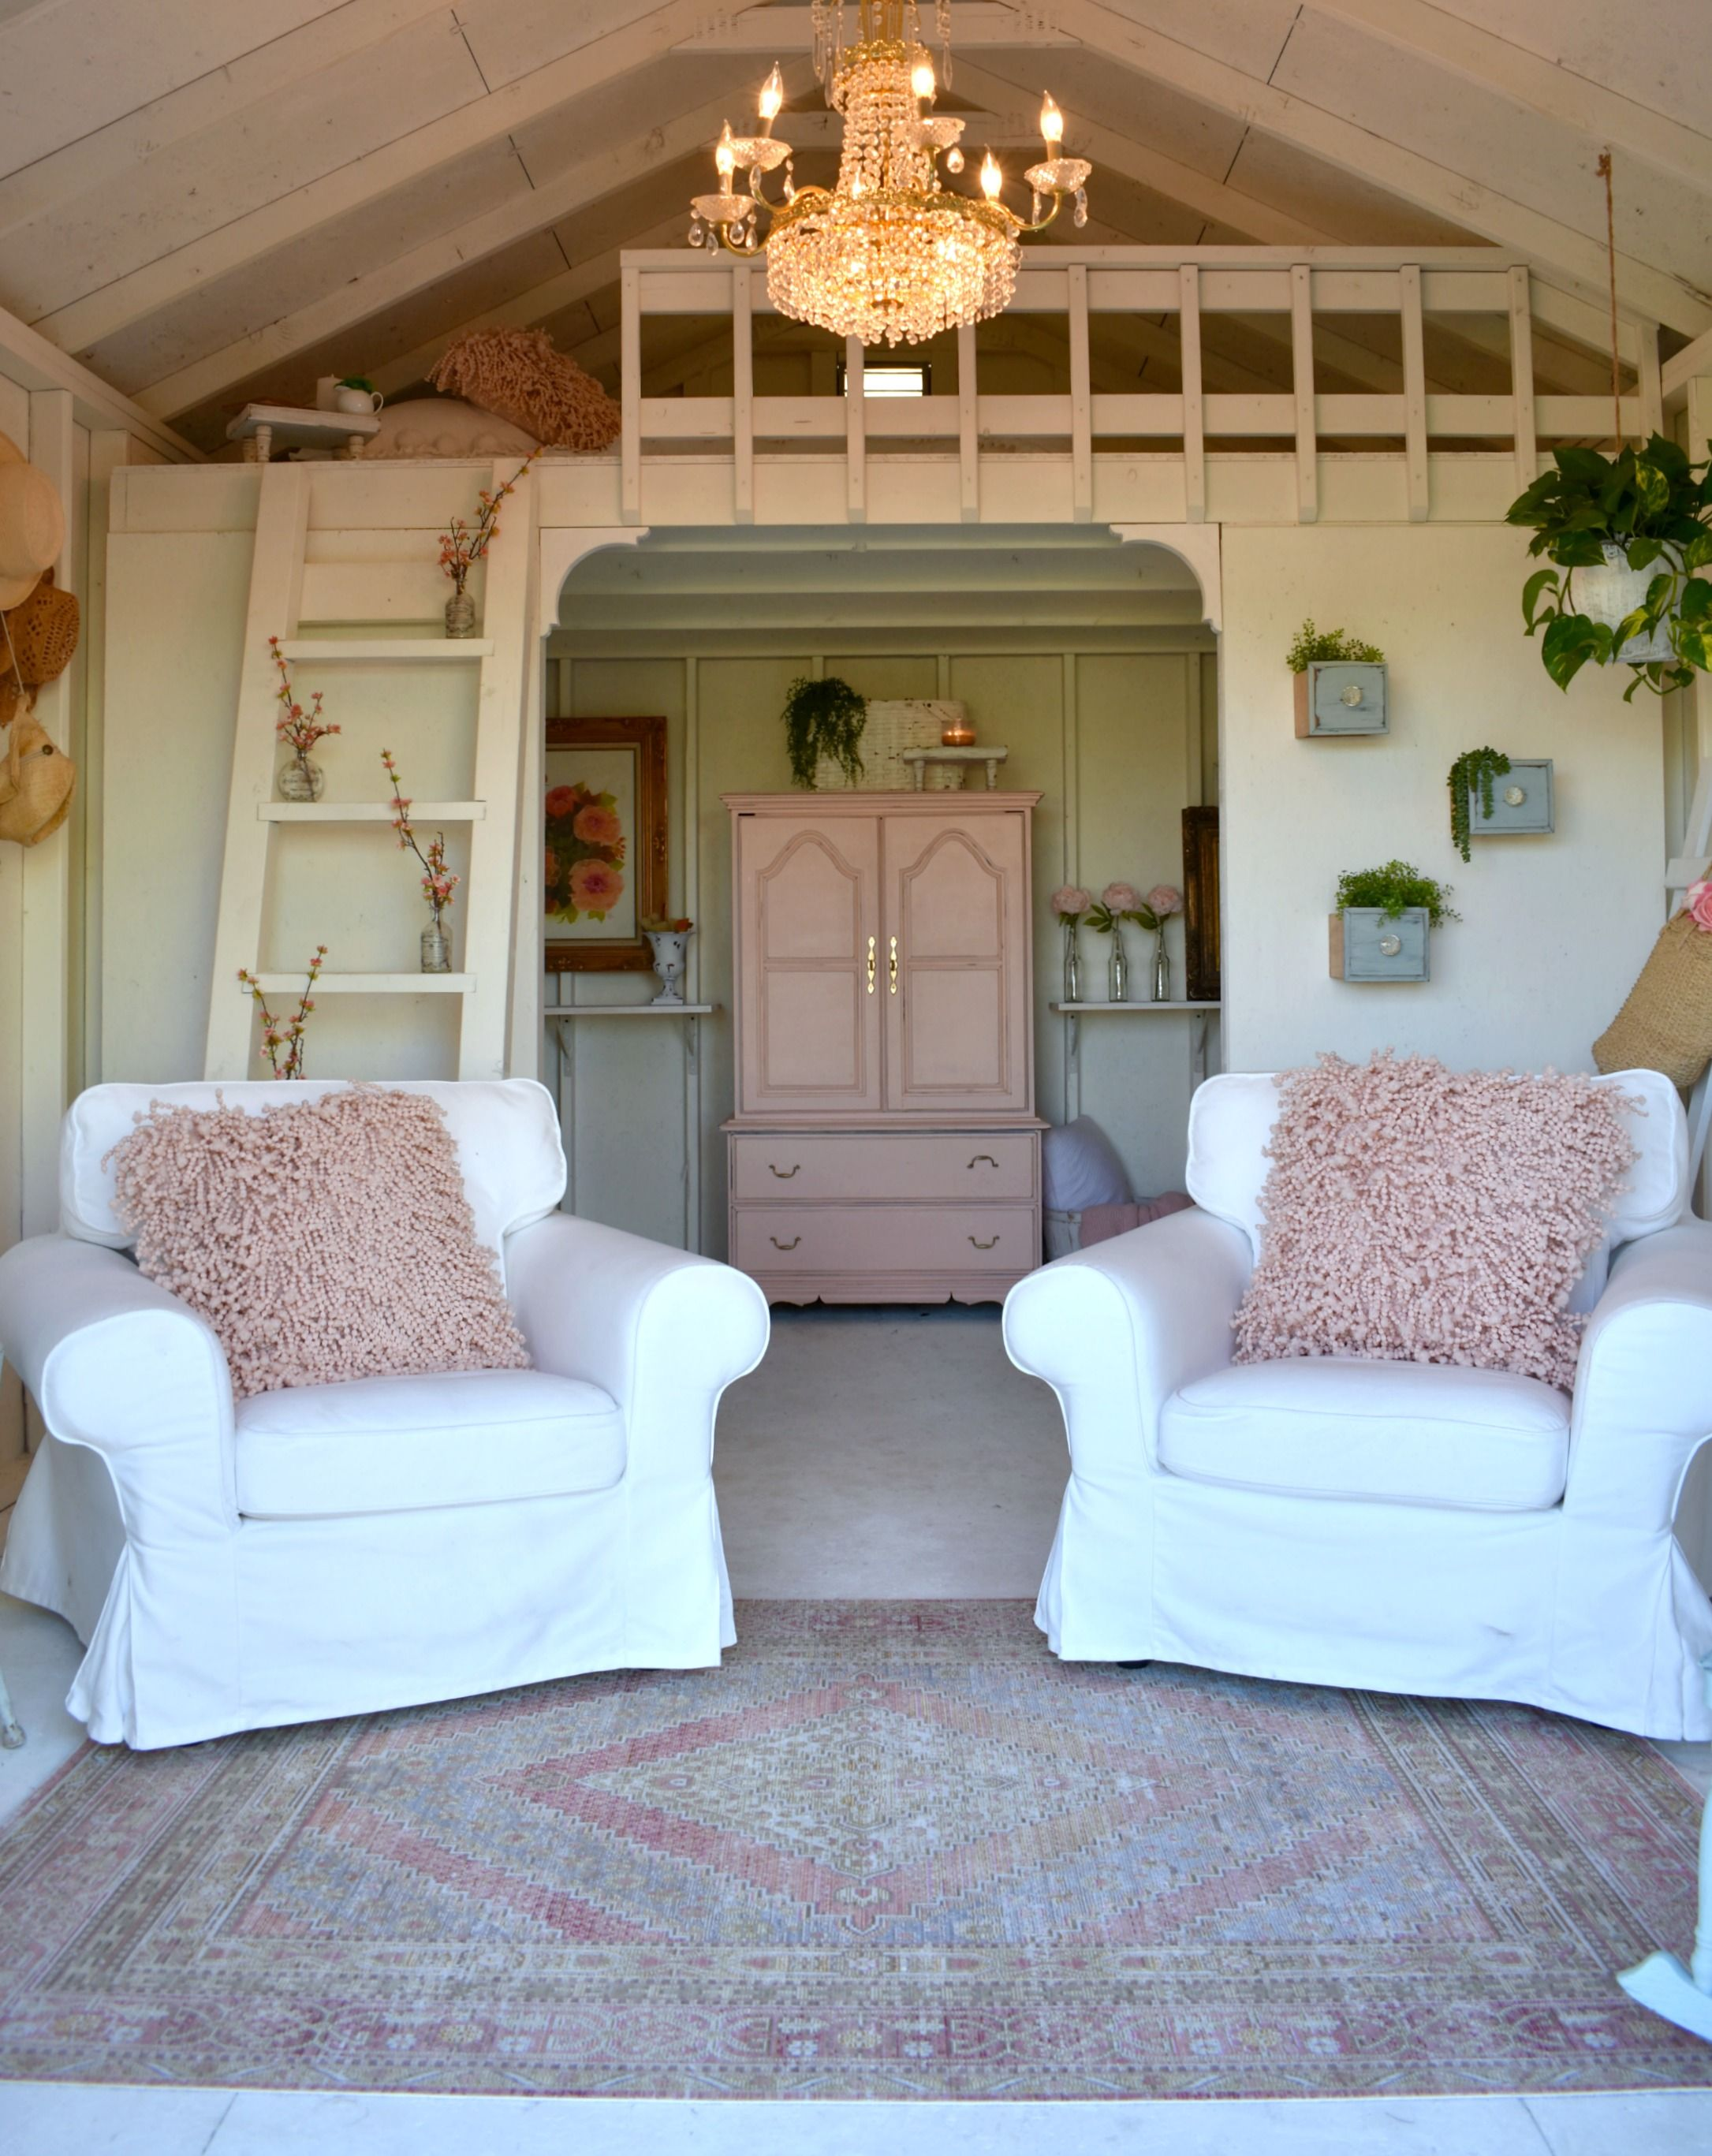 Pin On Shabby Chic Cottage Home Decor Ideas